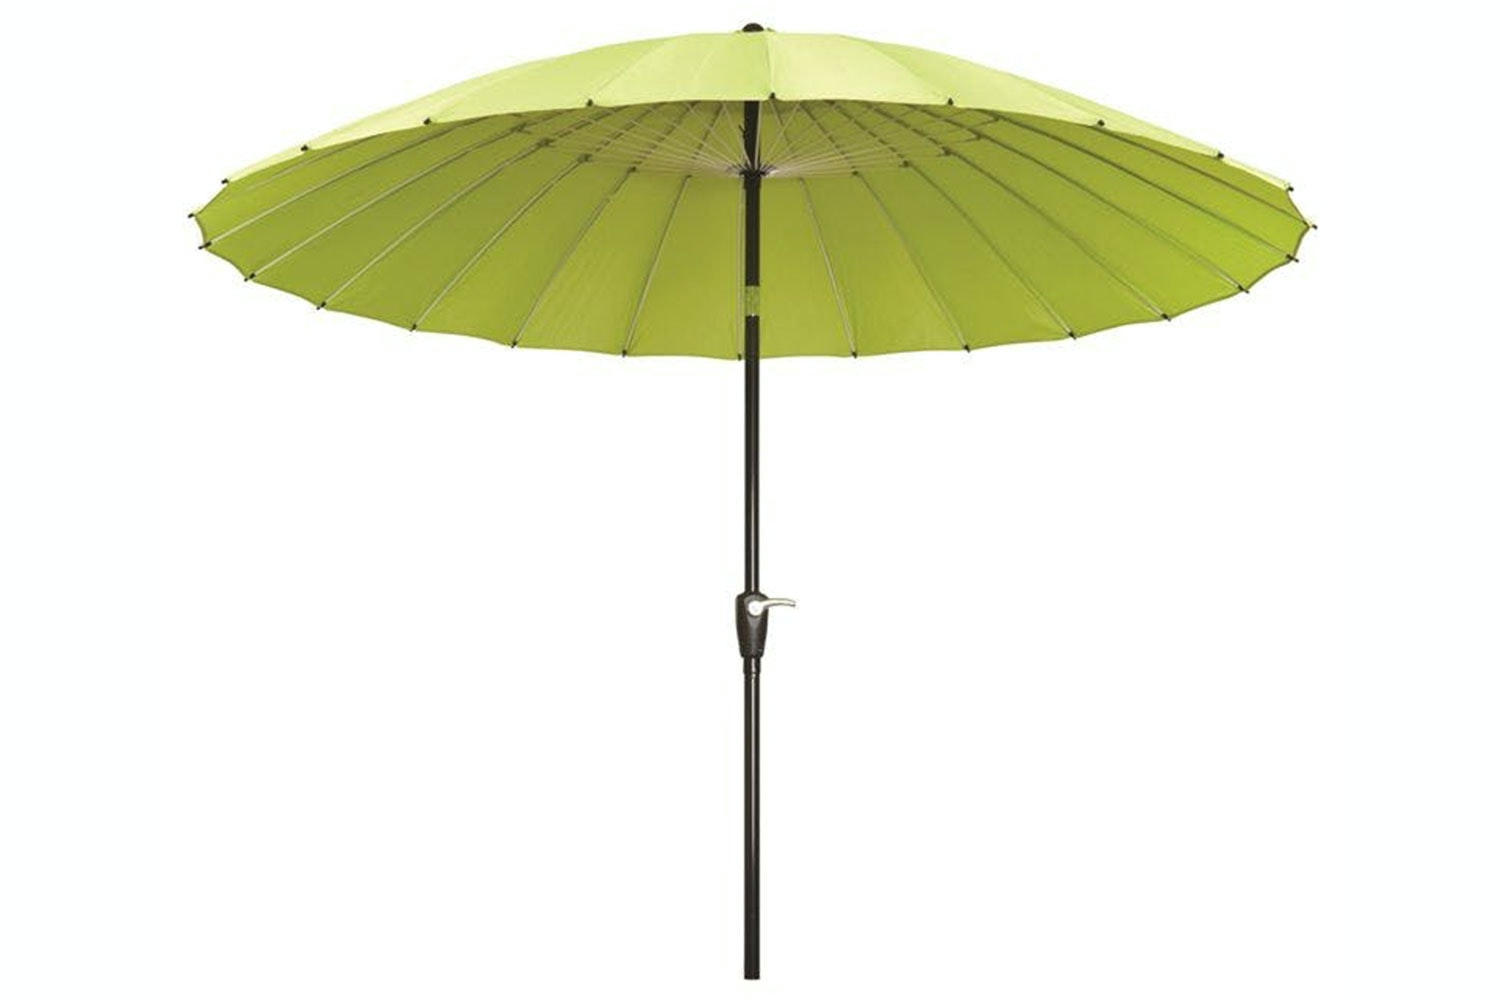 Oriental 2.7m Lime Outdoor Umbrella by Peros